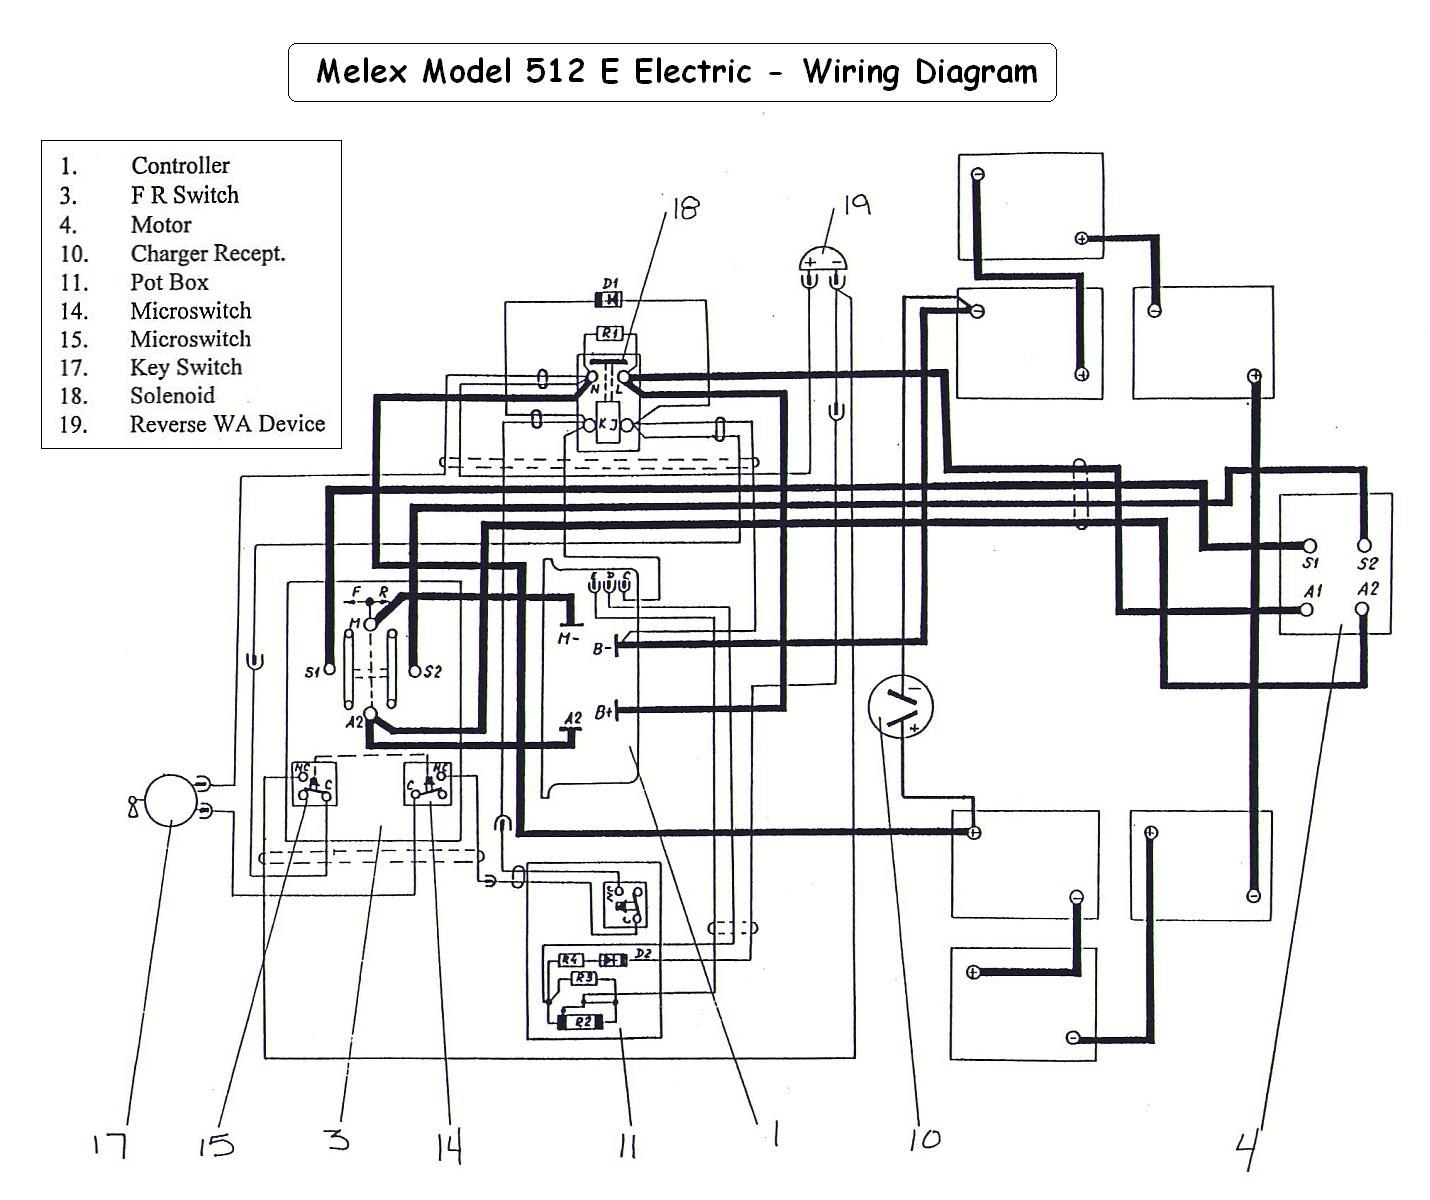 Gallery Melex512ewiringdiagram. Gallery Melex512ewiringdiagram. Yamaha. Yamaha It 250 Wiring Diagram At Justdesktopwallpapers.com